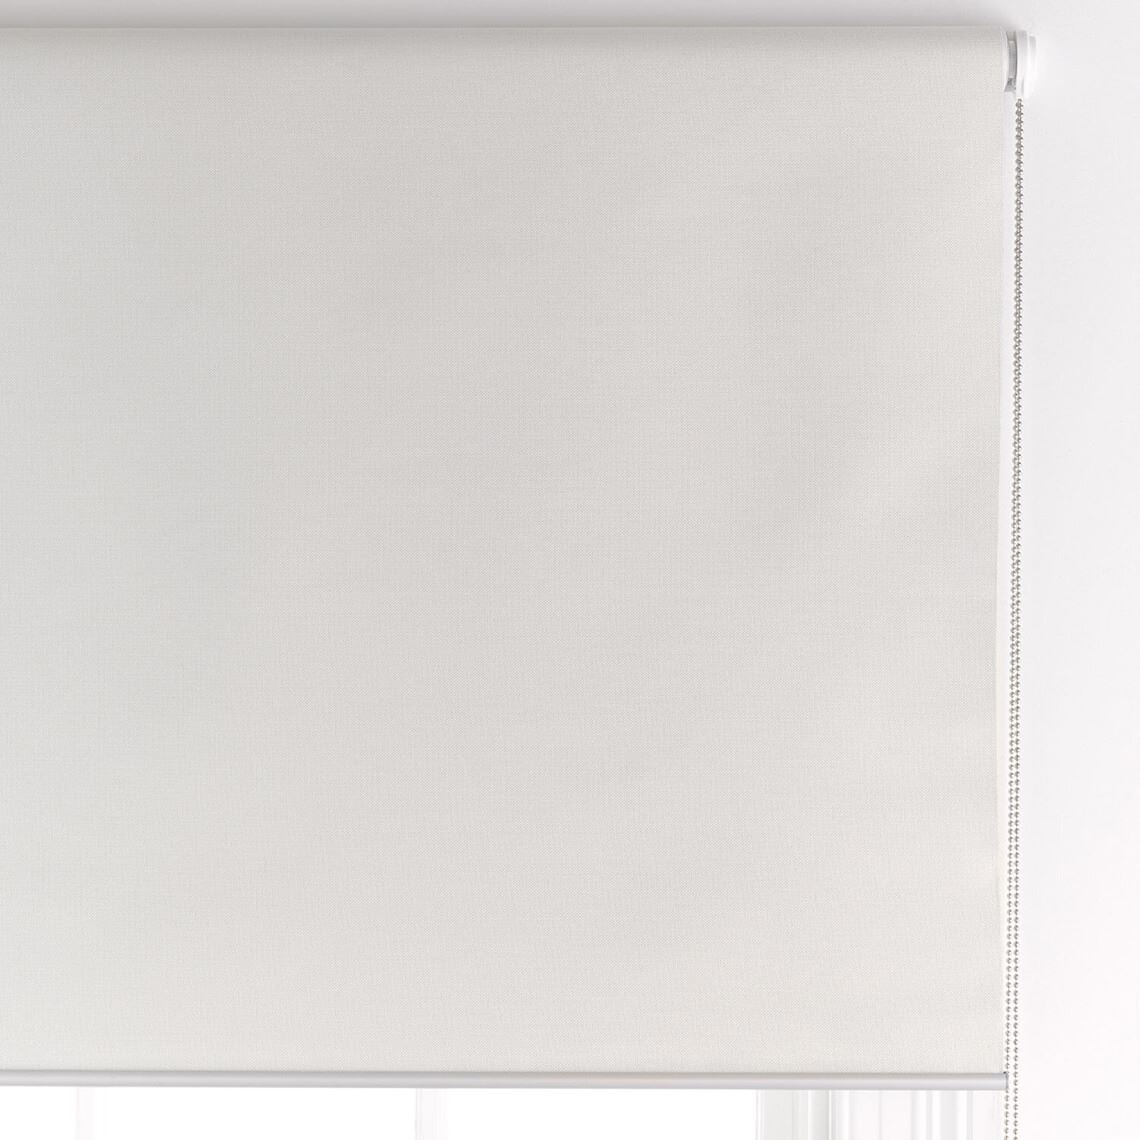 Milton Blockout Roller Blind Size W 60cm x D 1cm x H 210cm in Ivory 100% Polyester Freedom by Freedom, a Curtains for sale on Style Sourcebook